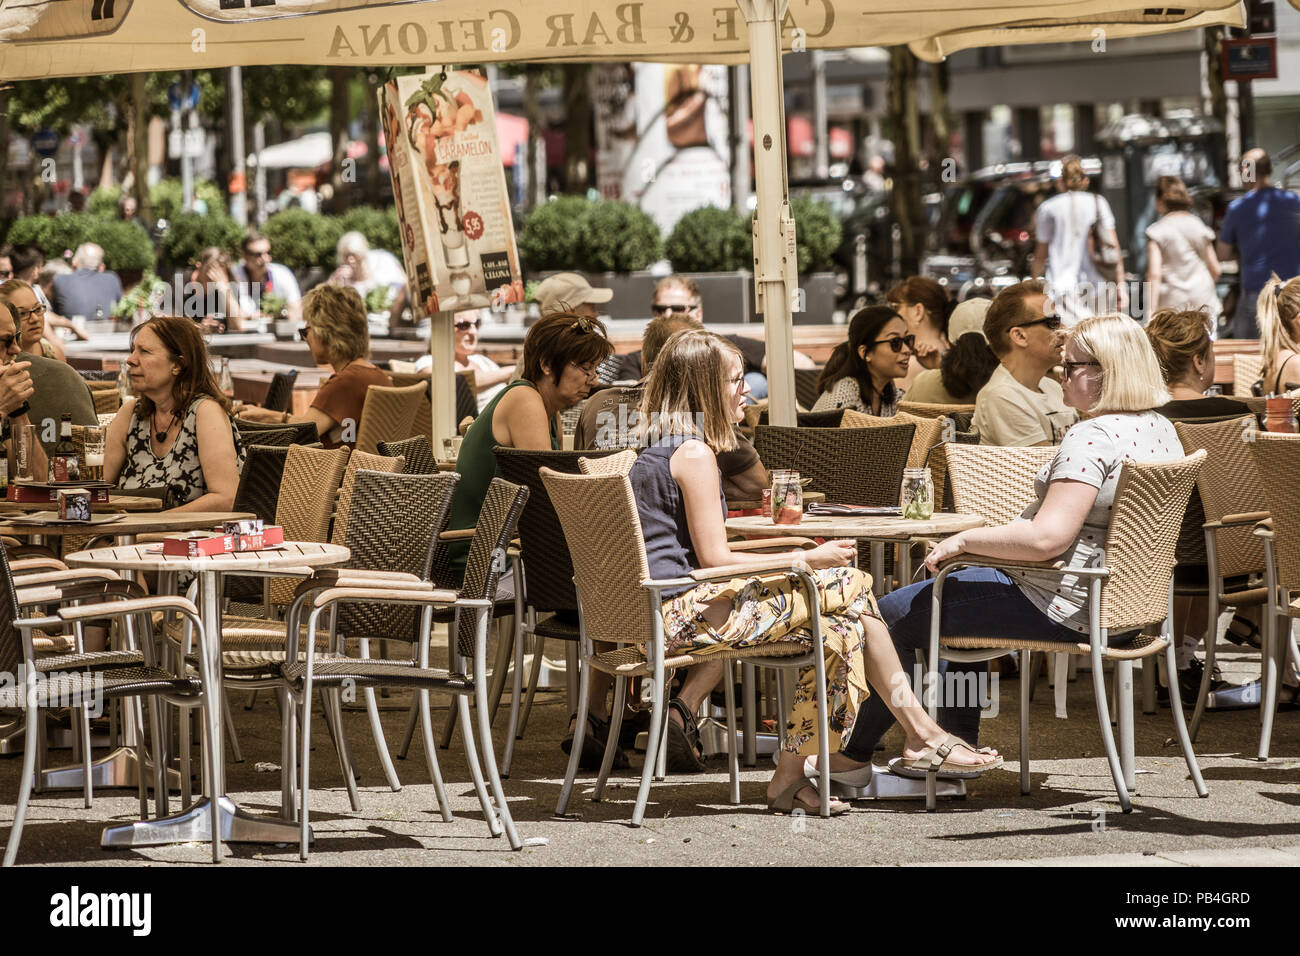 Wolfsburg, Lower-Saxony, Ger,any, July 1st 2018: Cafe occupied by many people in the pedestrian zone during a city festival Stock Photo